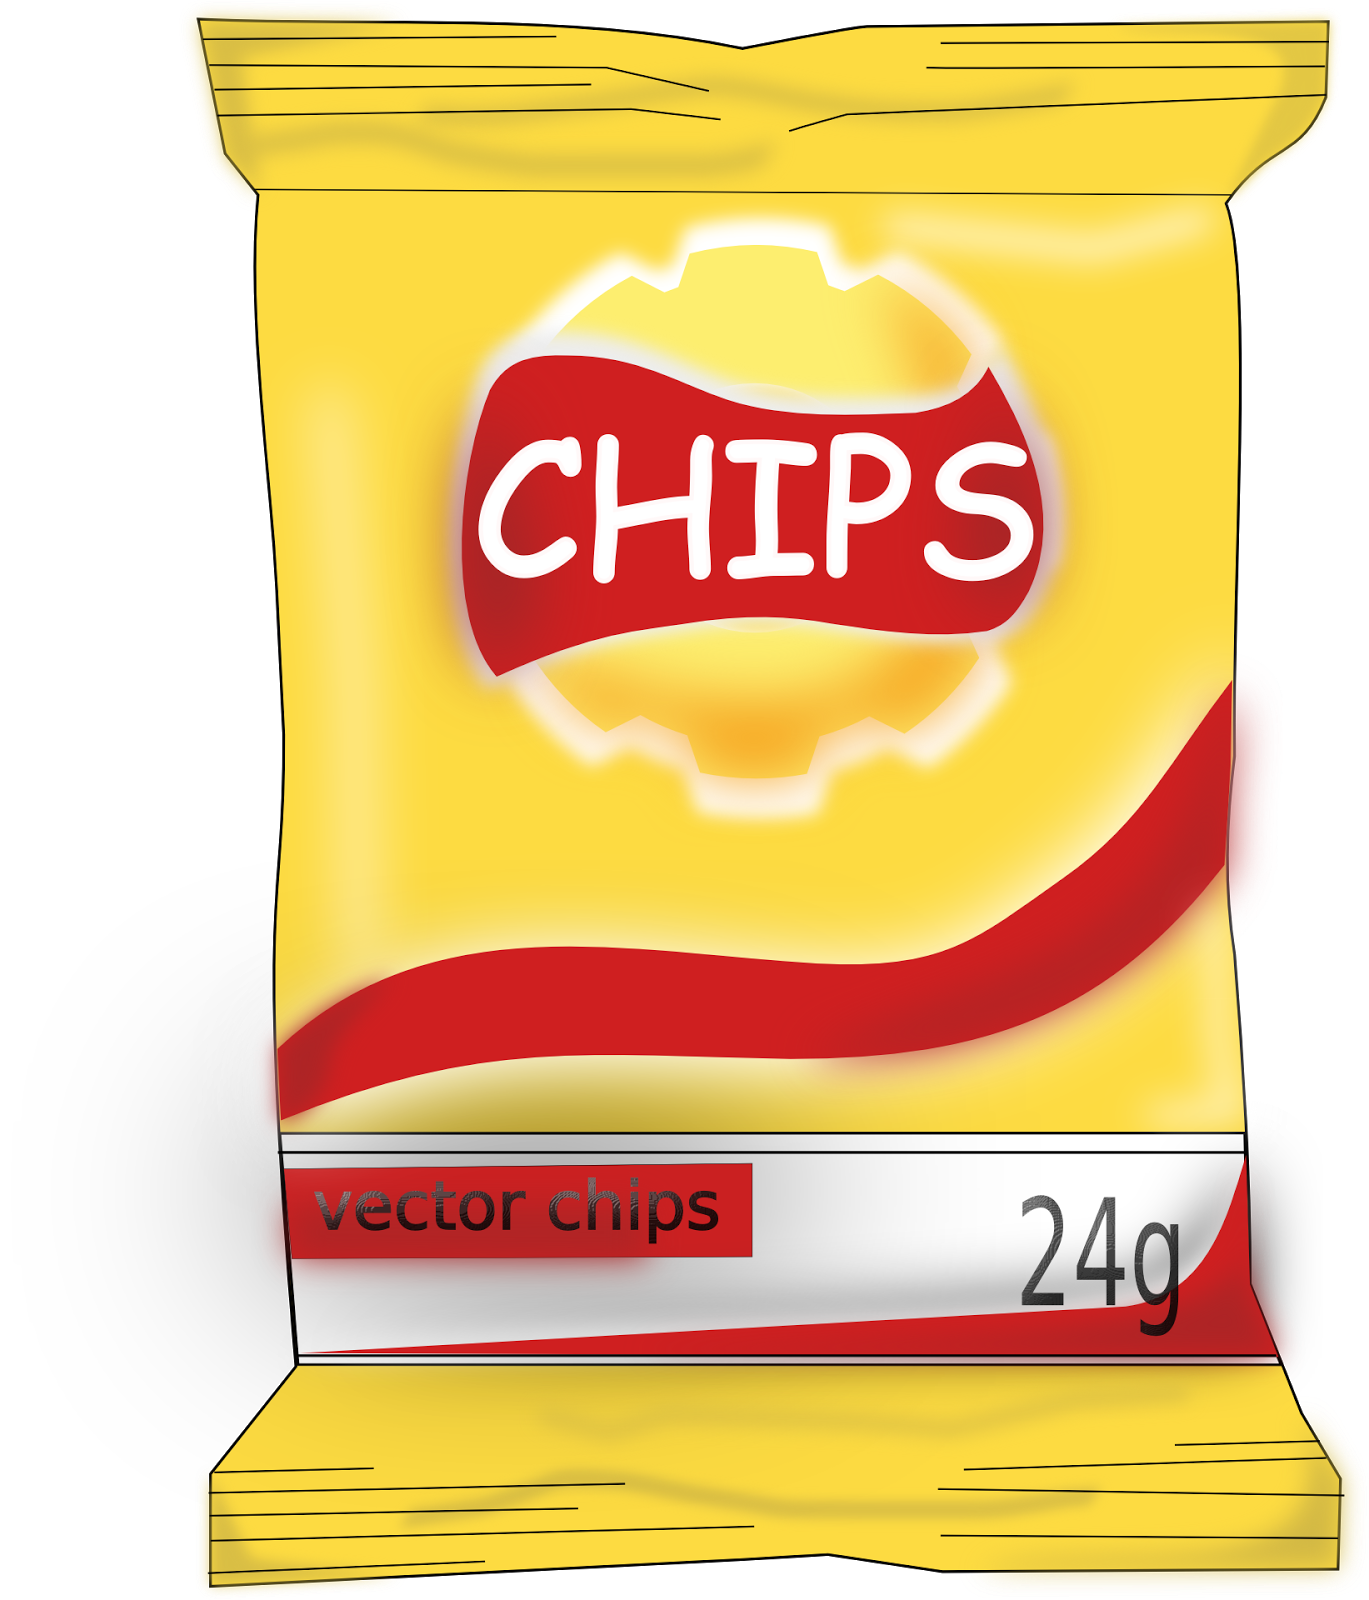 Chips clipart unhealthy food. At getdrawings com free